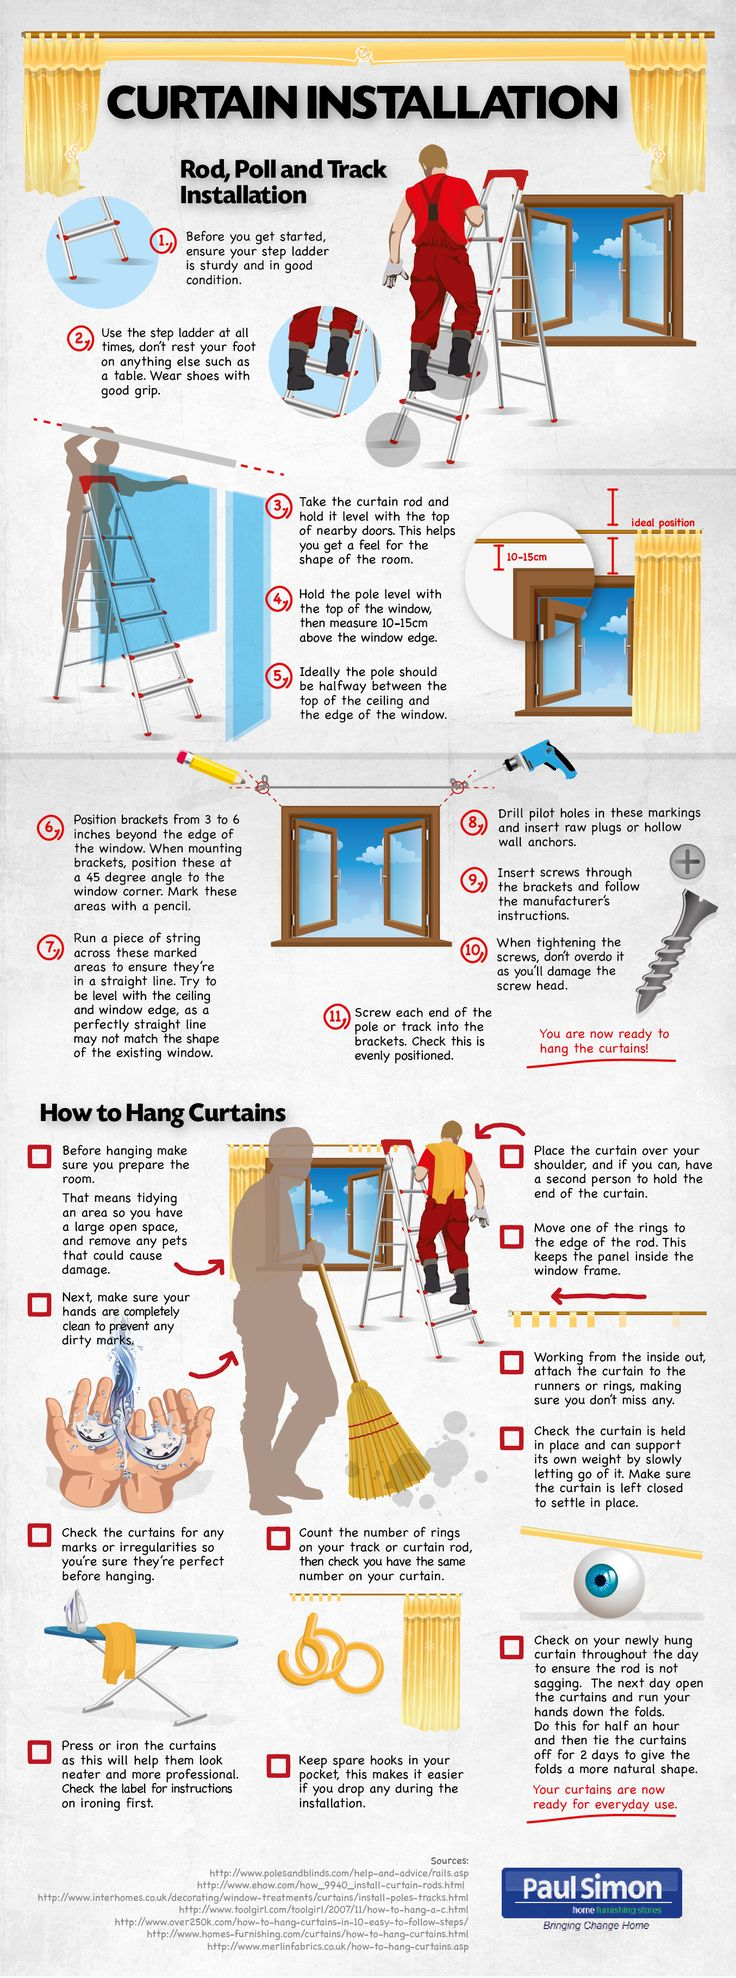 http://www.newsilike.in/wp-content/uploads/2011/12/How-To-Install-Curtains.jpg